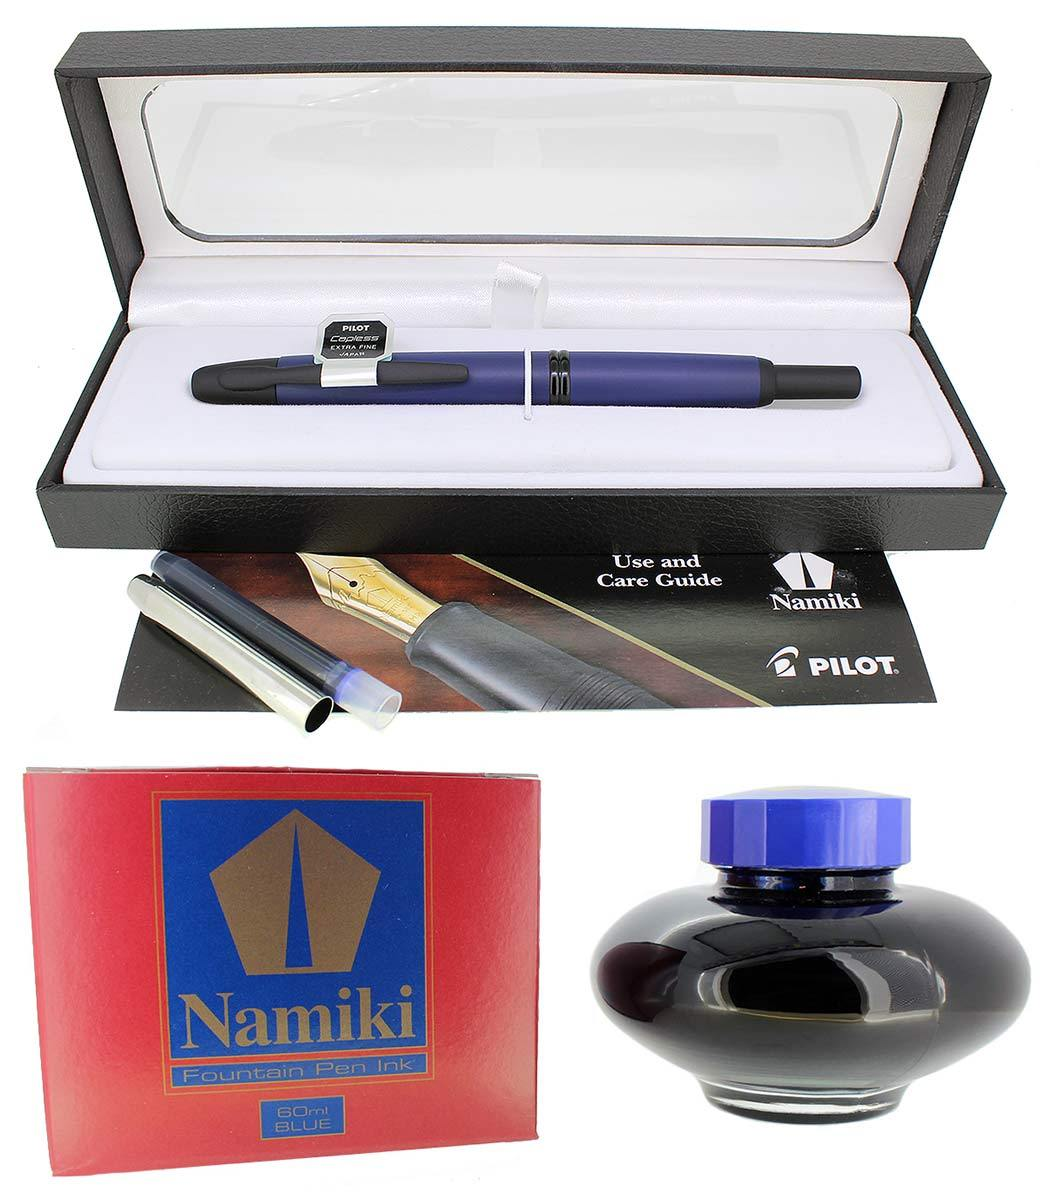 PILOT NAMIKI VANISHING POINT MATTE BLUE WITH BLACK TRIM 18K NIB FOUNTAIN PEN OFFERED BY ANTIQUE DIGGER